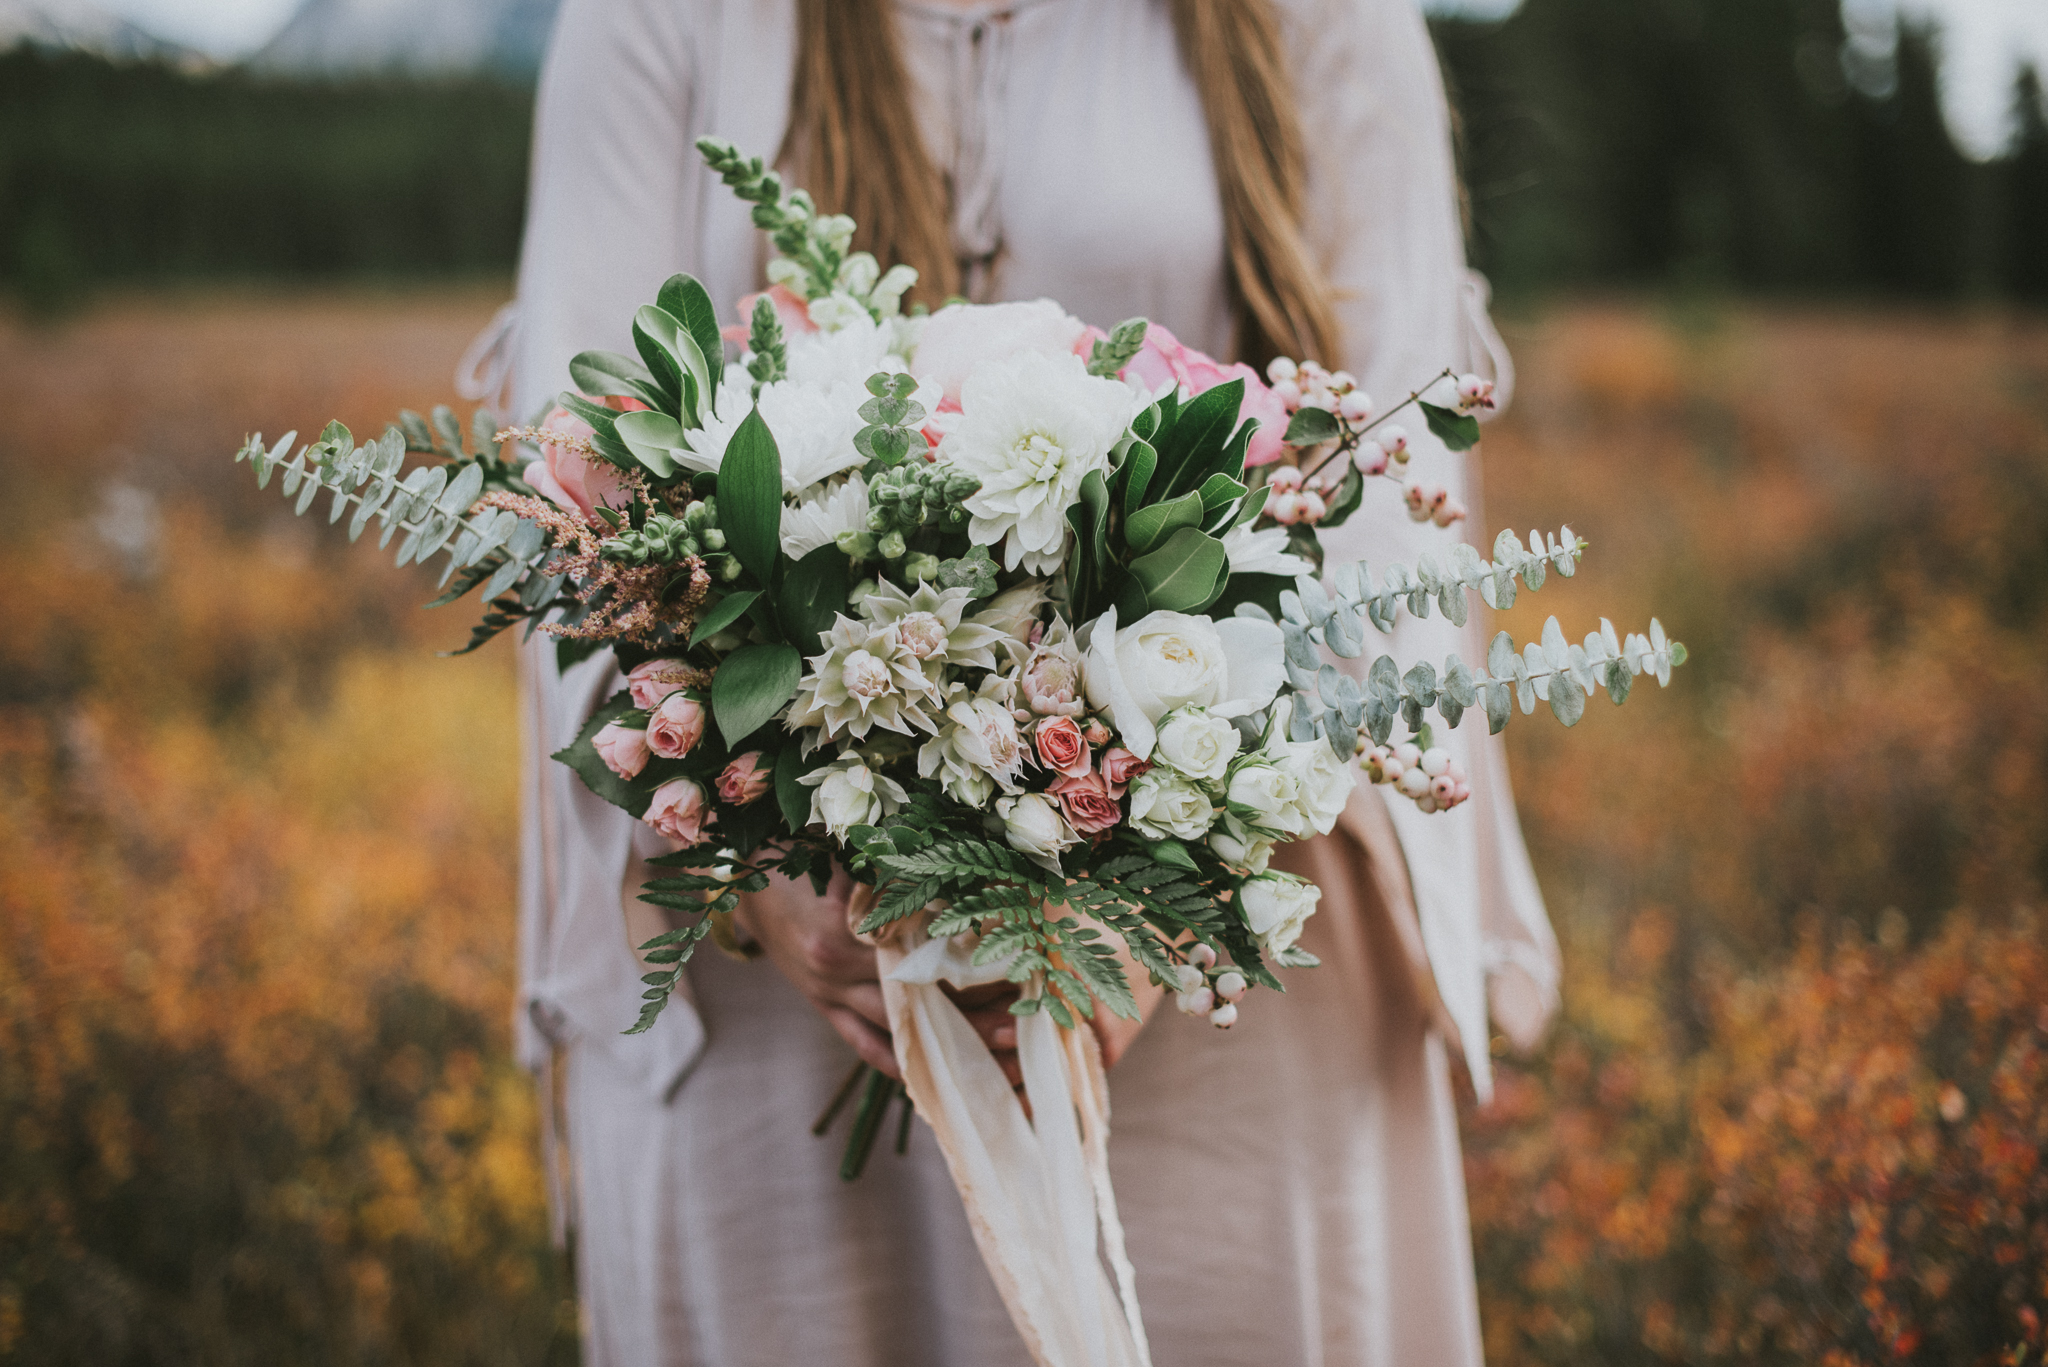 kananaskis bride flower bouquet portrait